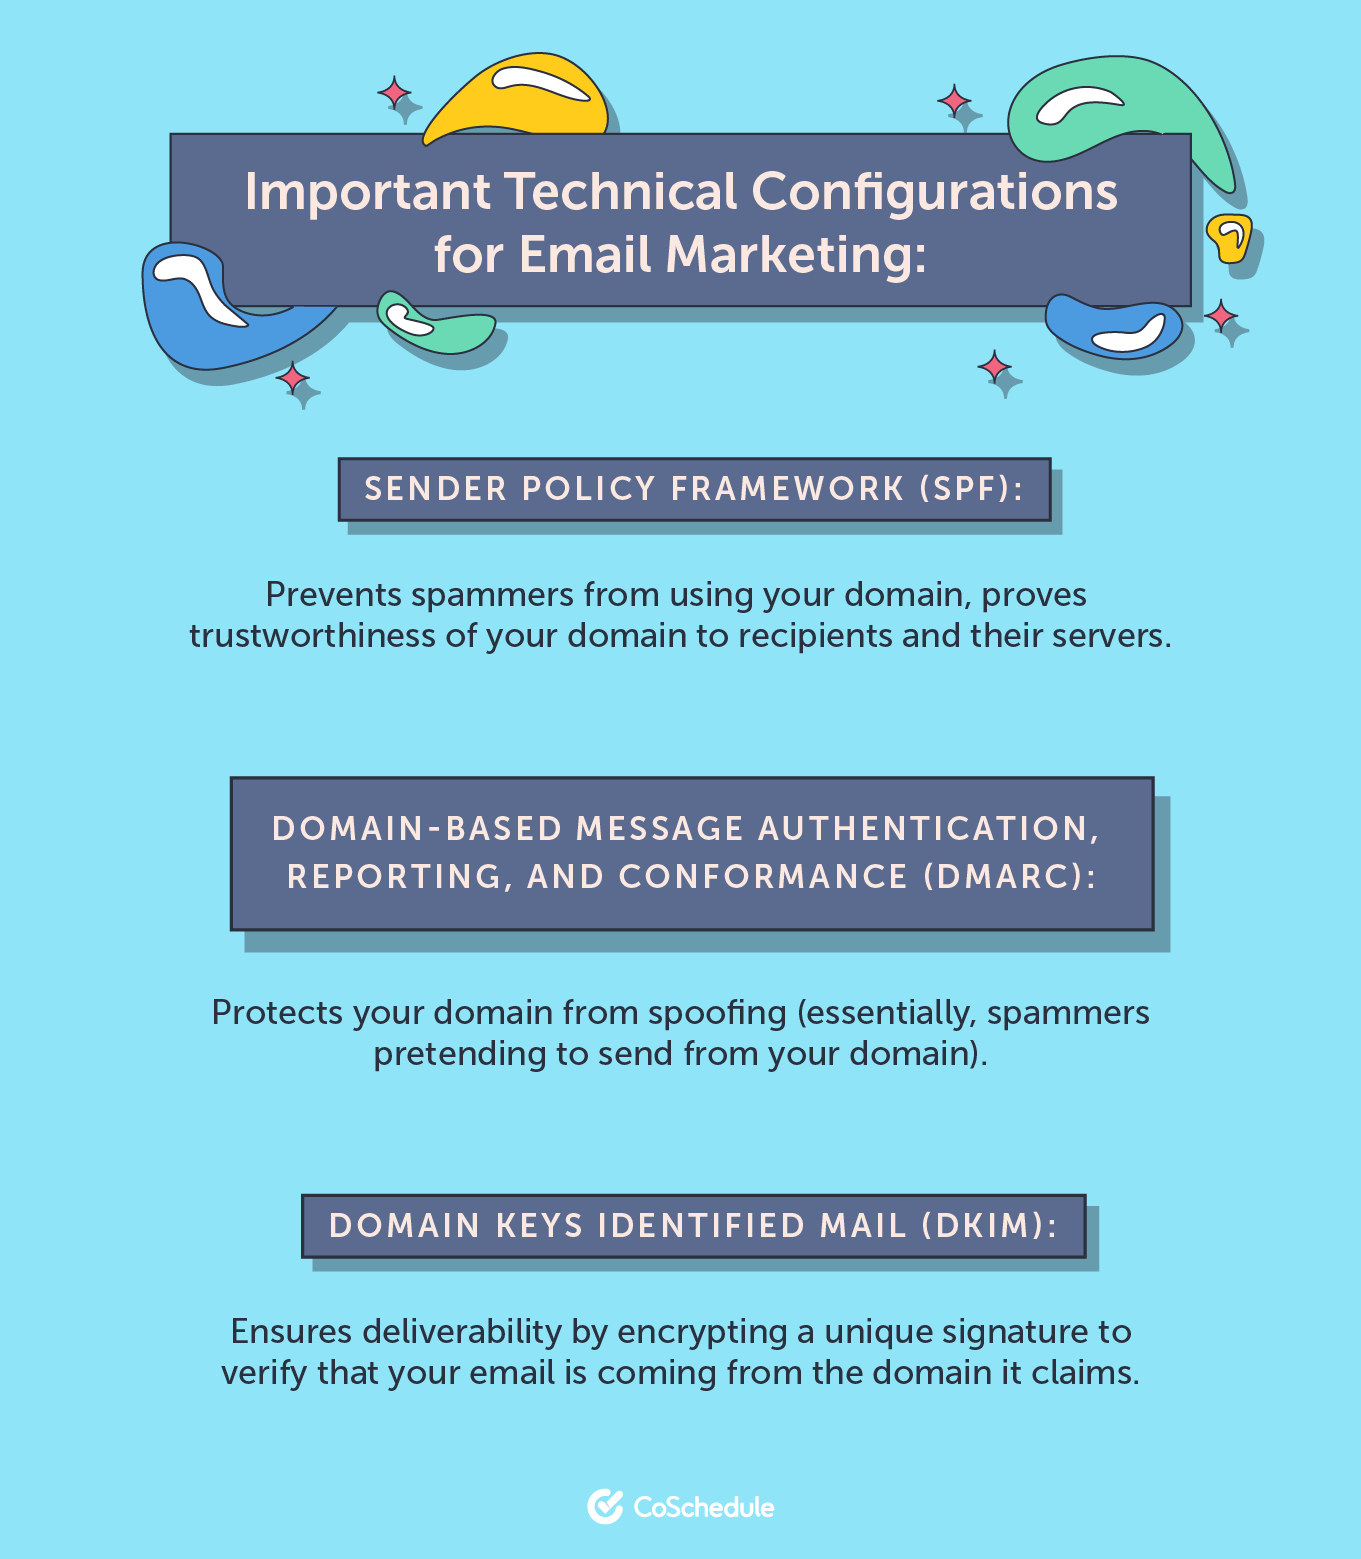 Important technical configurations for email marketing